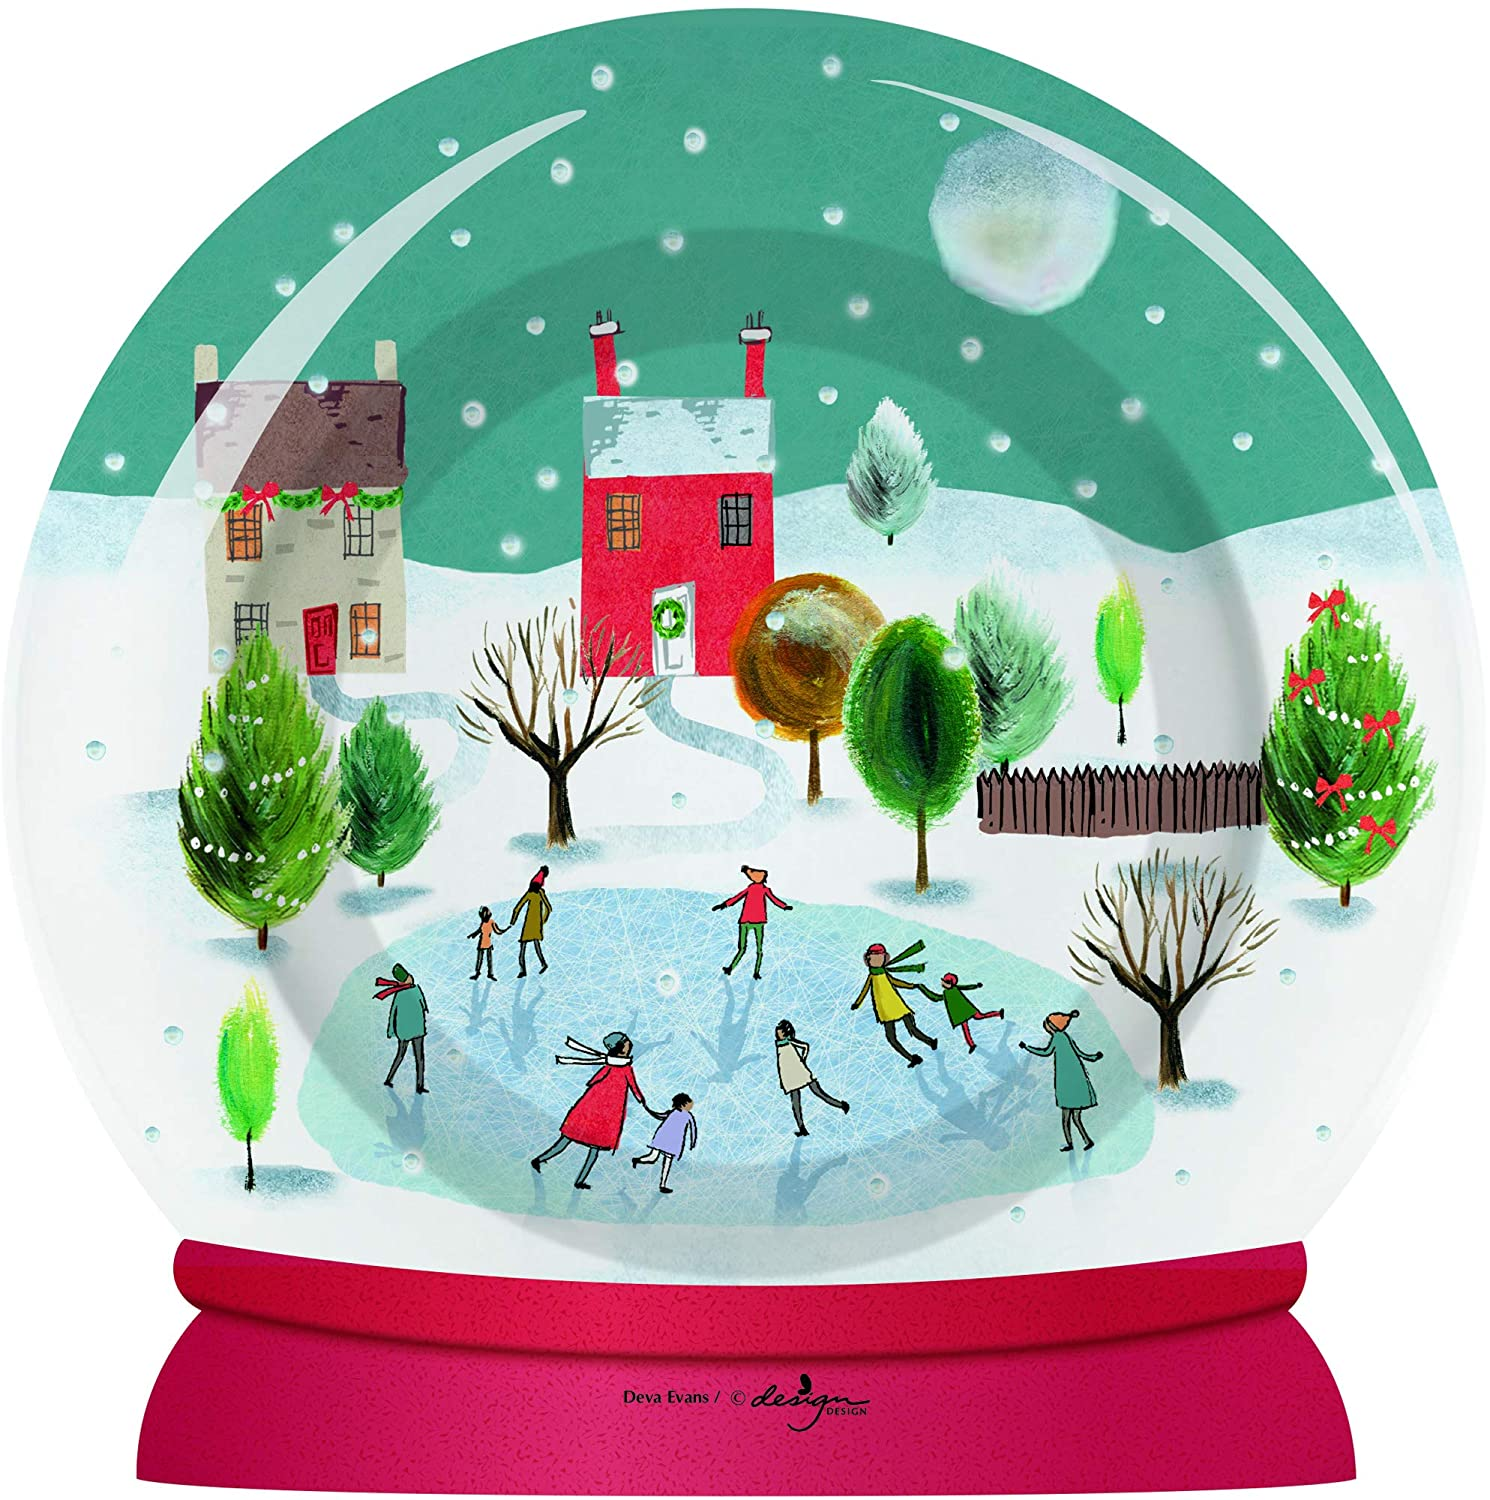 Christmas Snow Globe Die-Cut Luncheon Plates and Napkins by Design Design